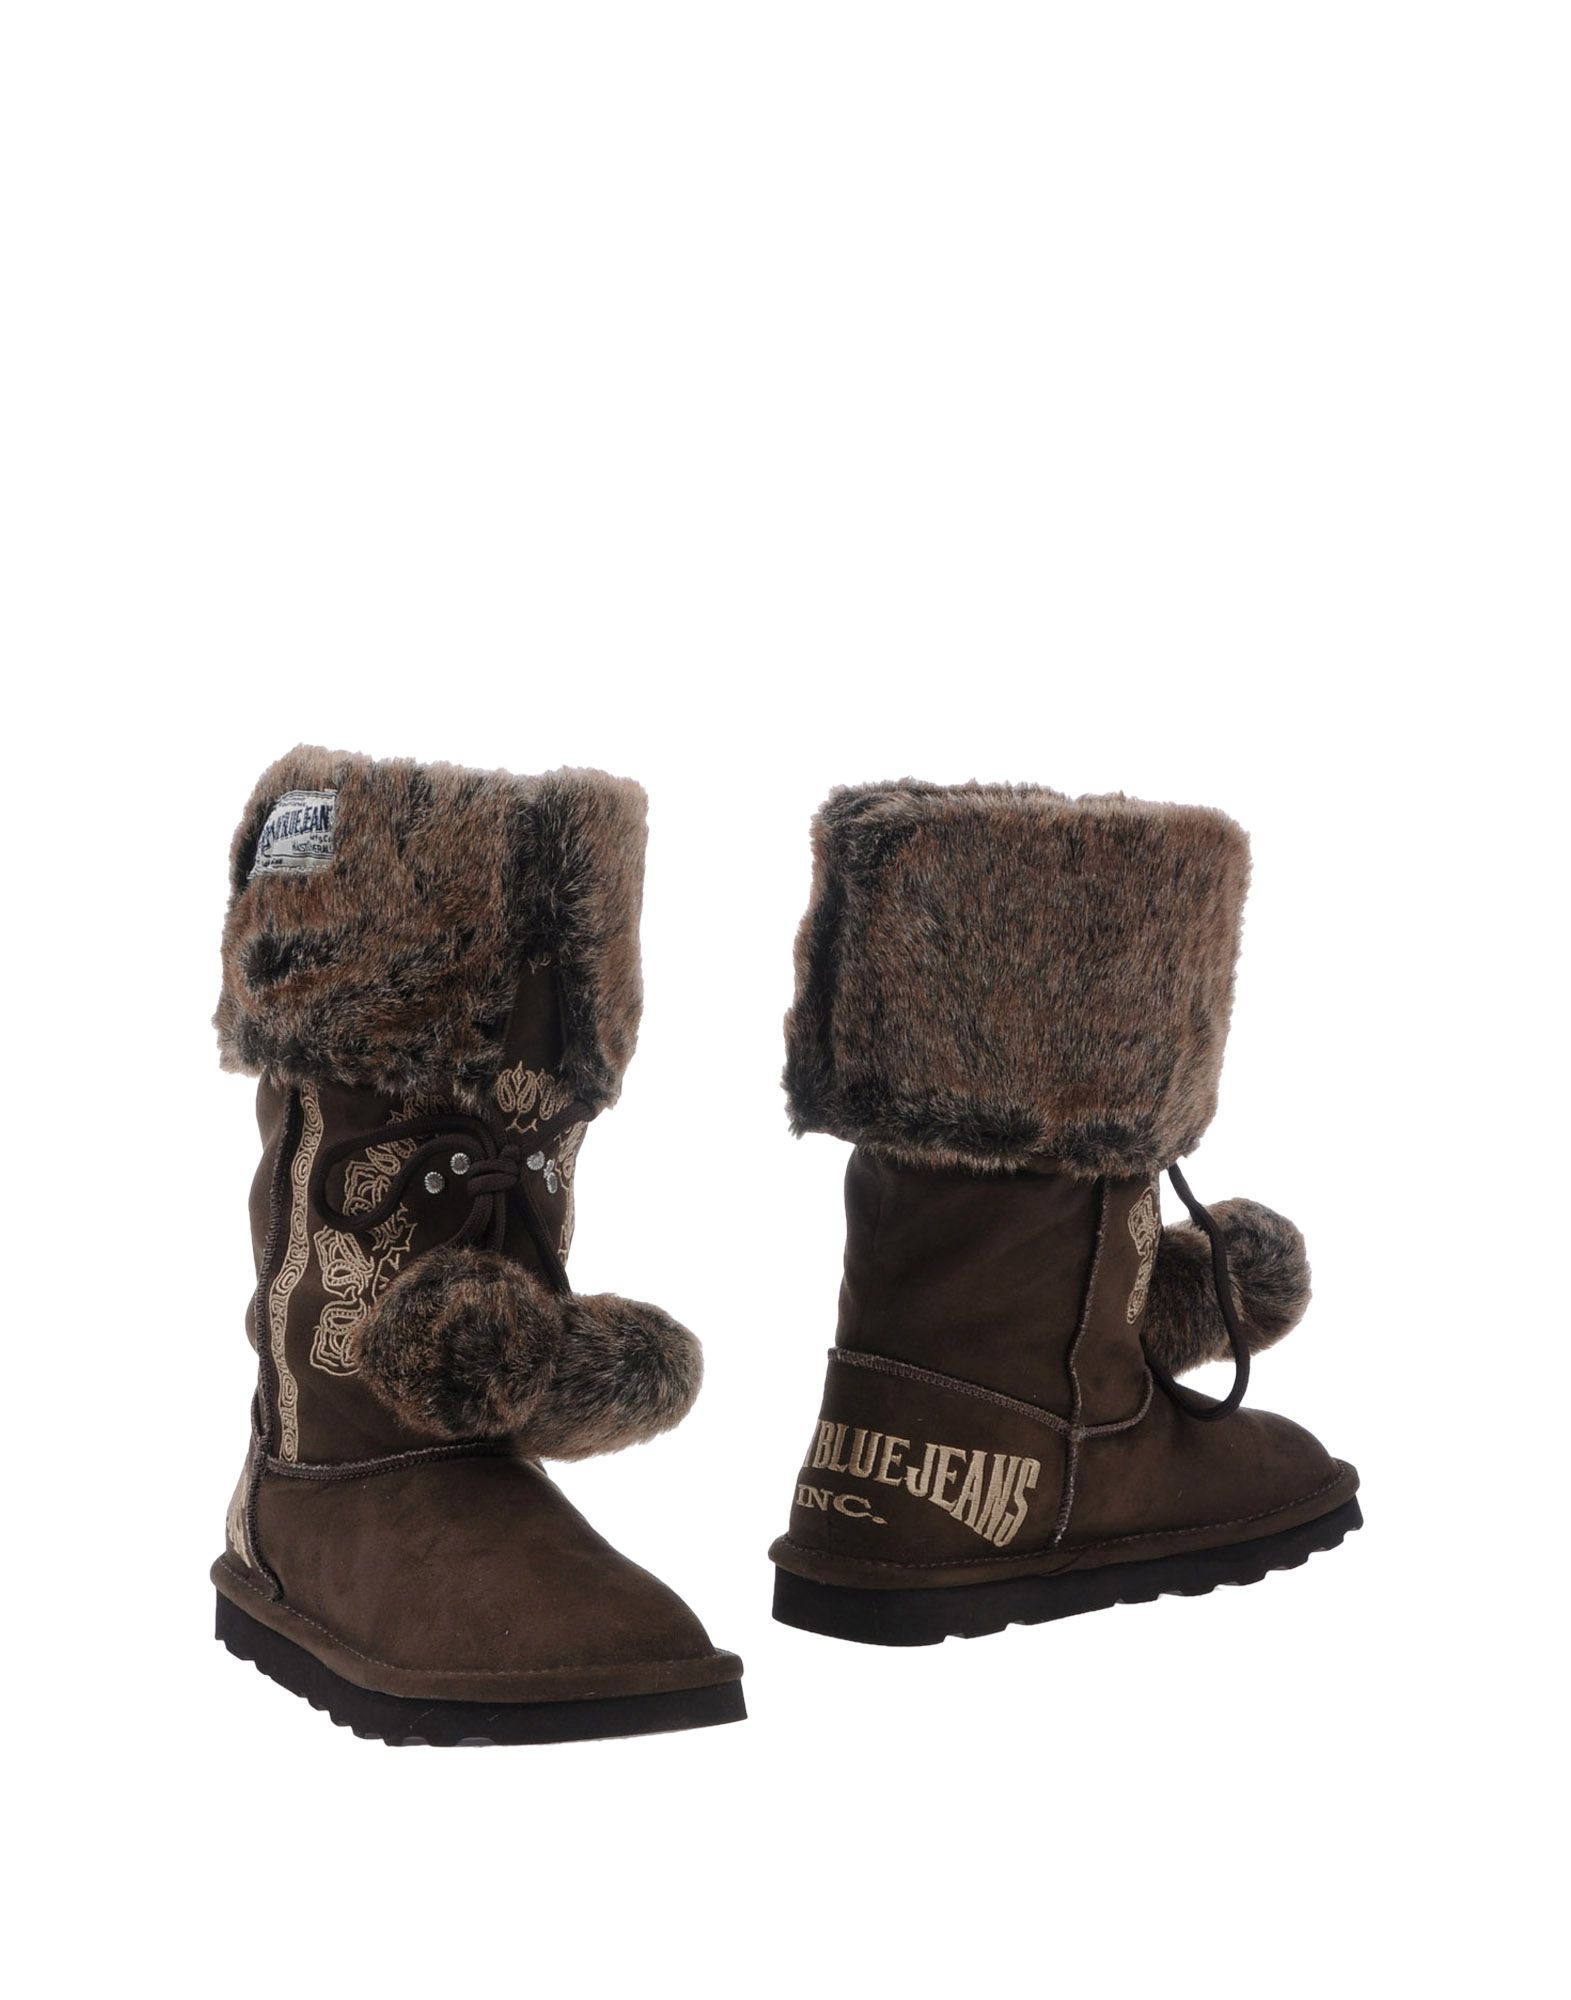 Replay Boots in Brown (dark brown)